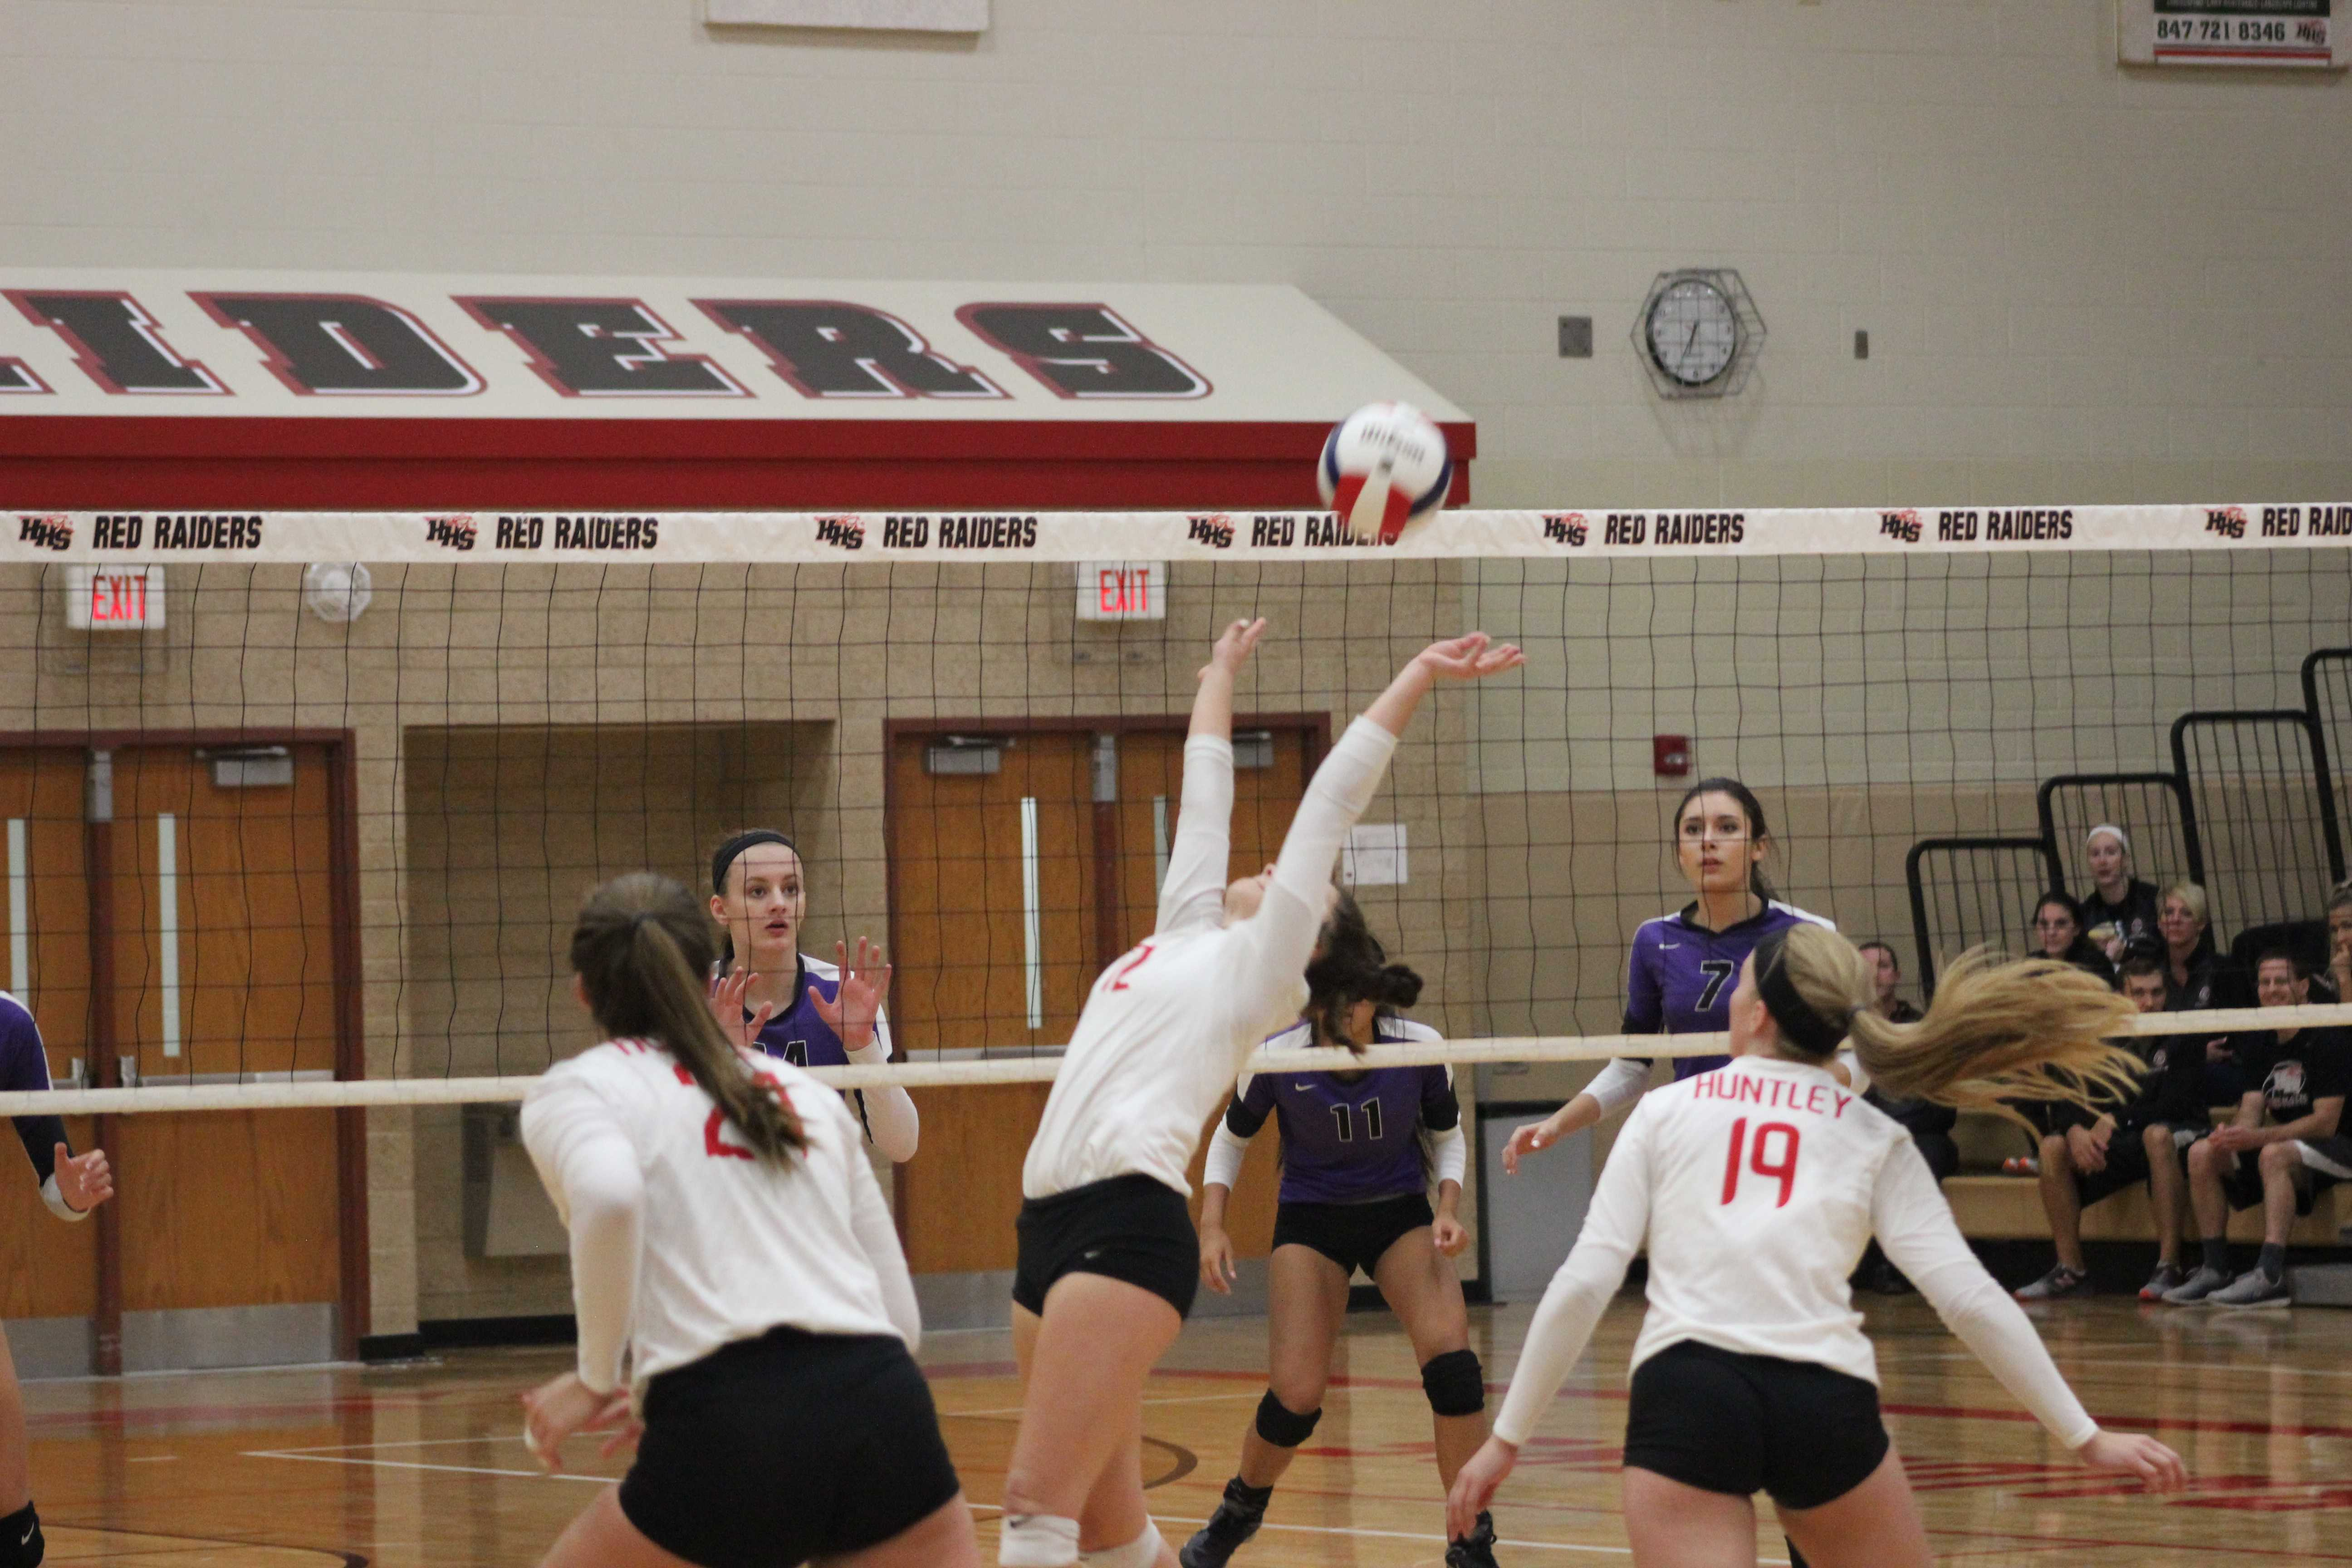 Freshman Taylor Jakubowski sets the ball for one of the hitters (Courtesy of J. Link).